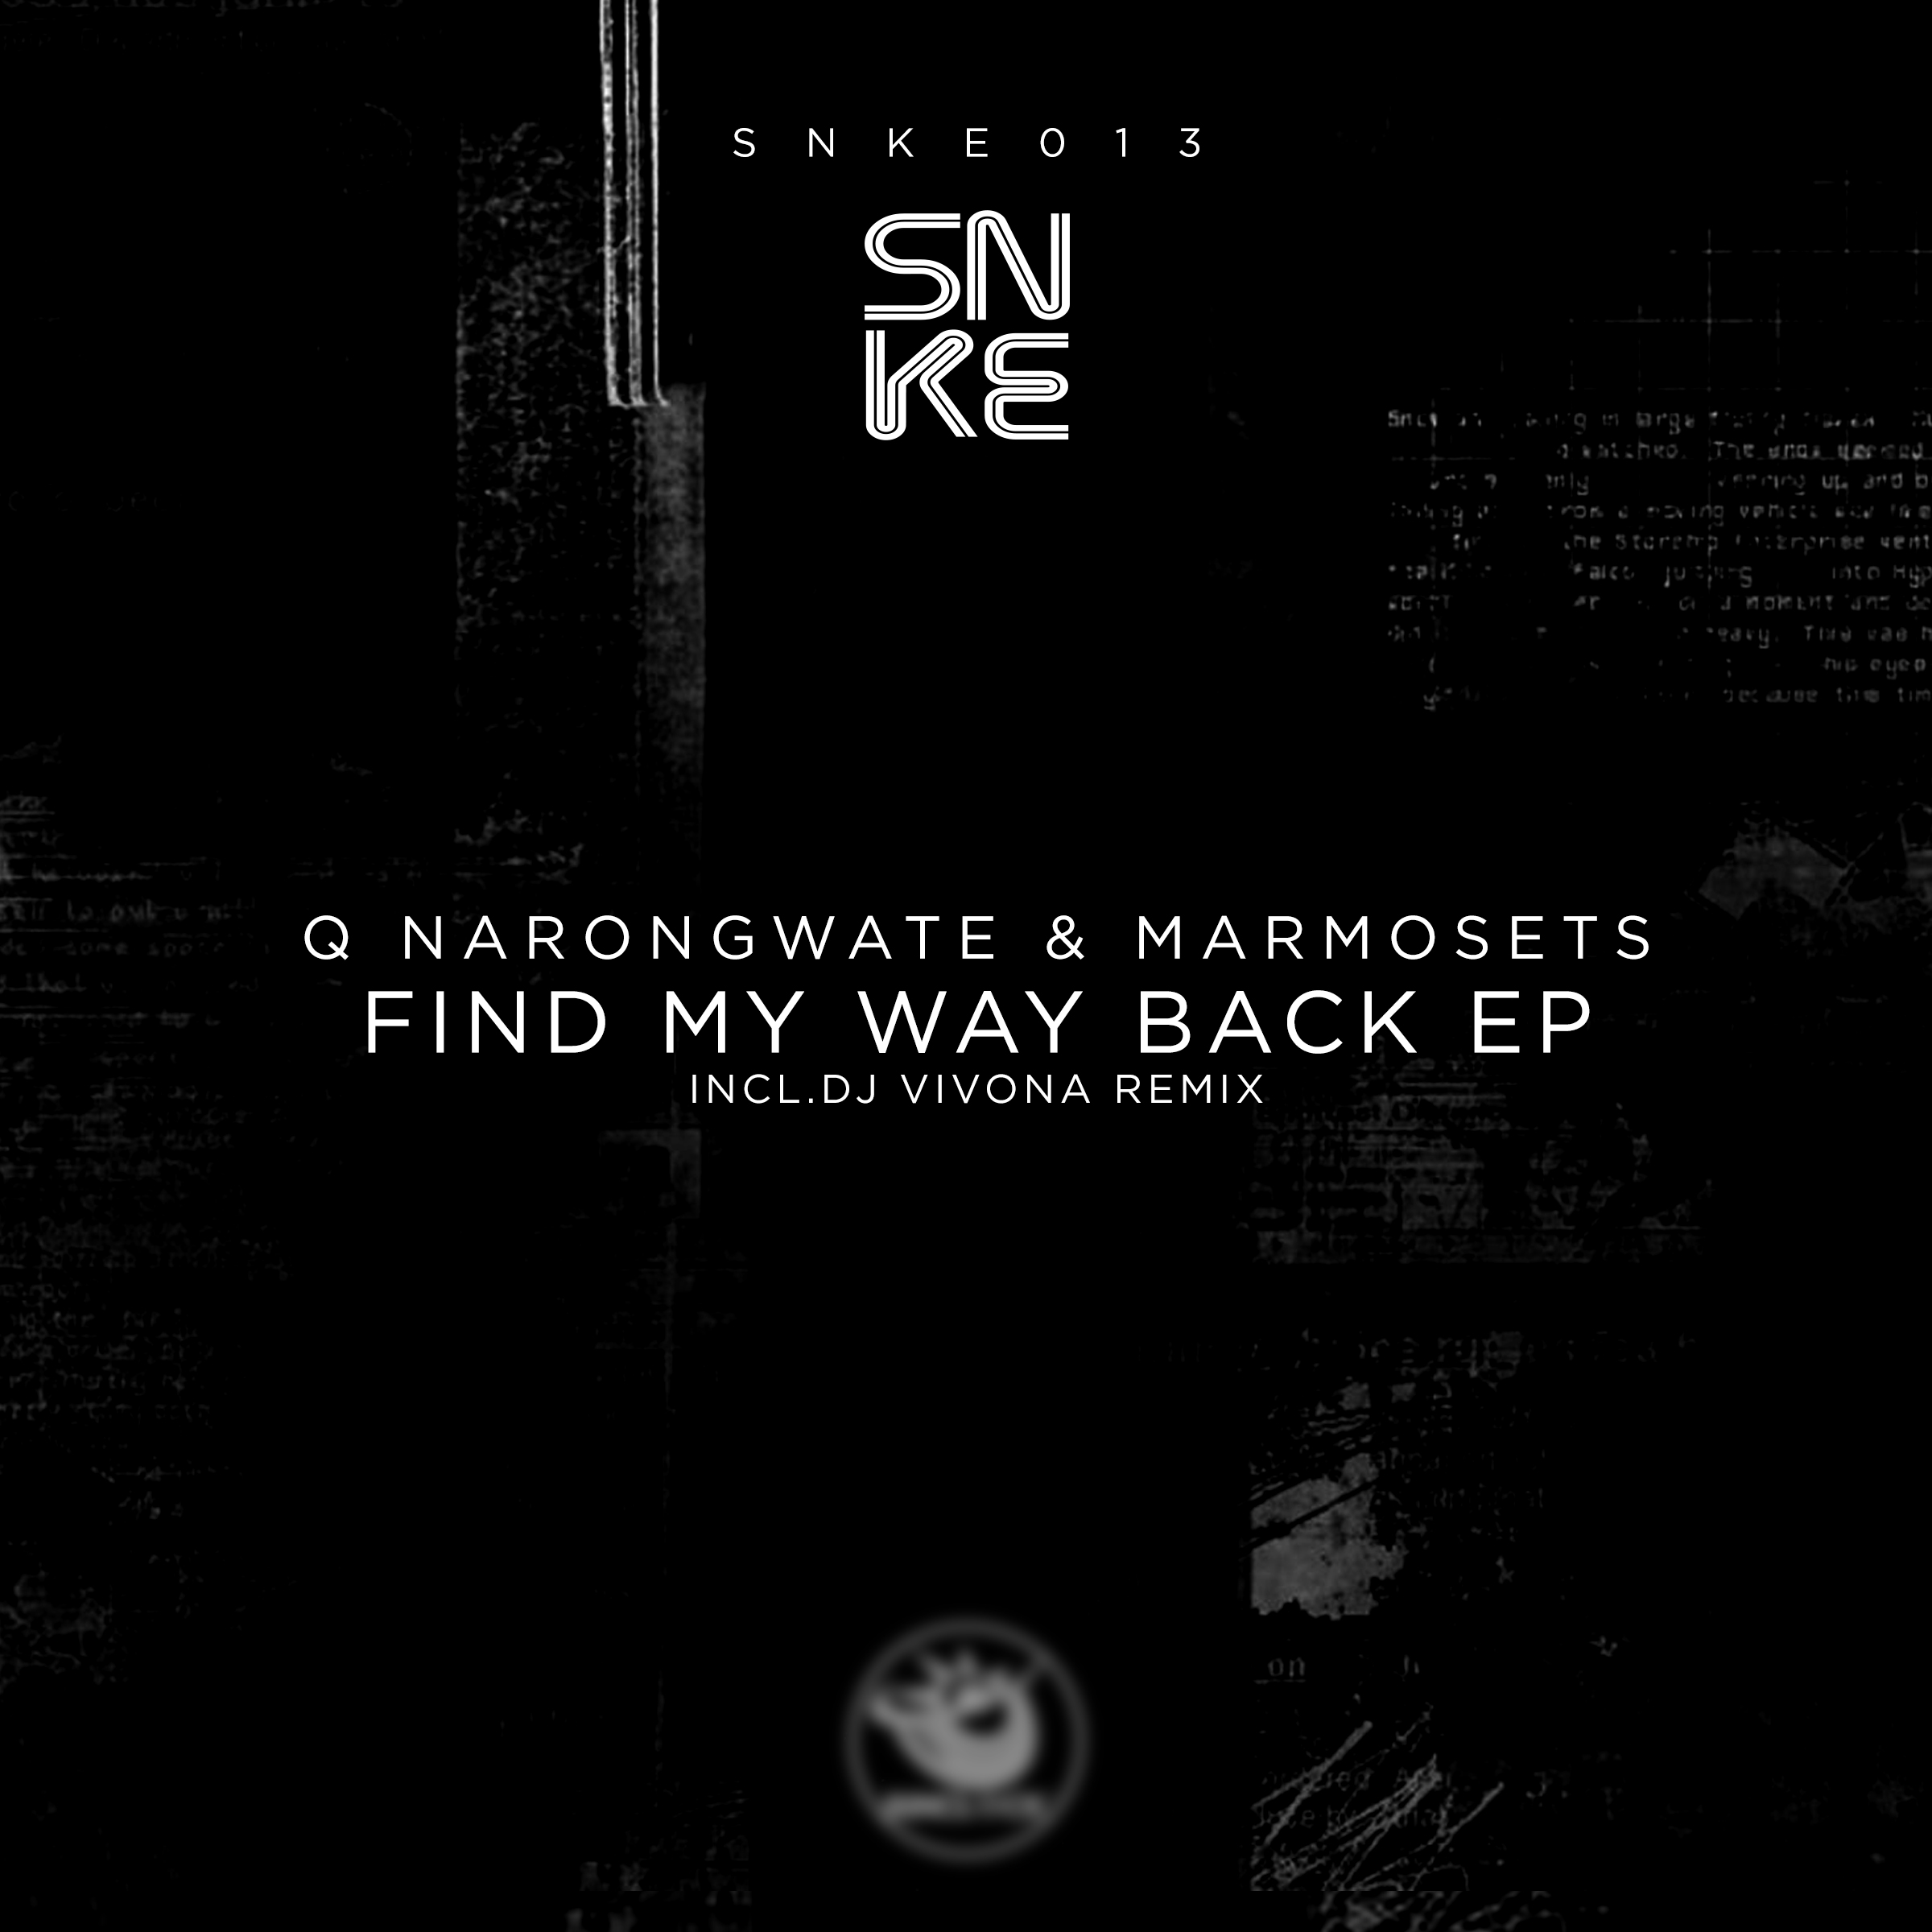 Q Narongwate & Marmosets - Find My Way Back EP (incl. Dj Vivona Remix) - SNKE013 Cover